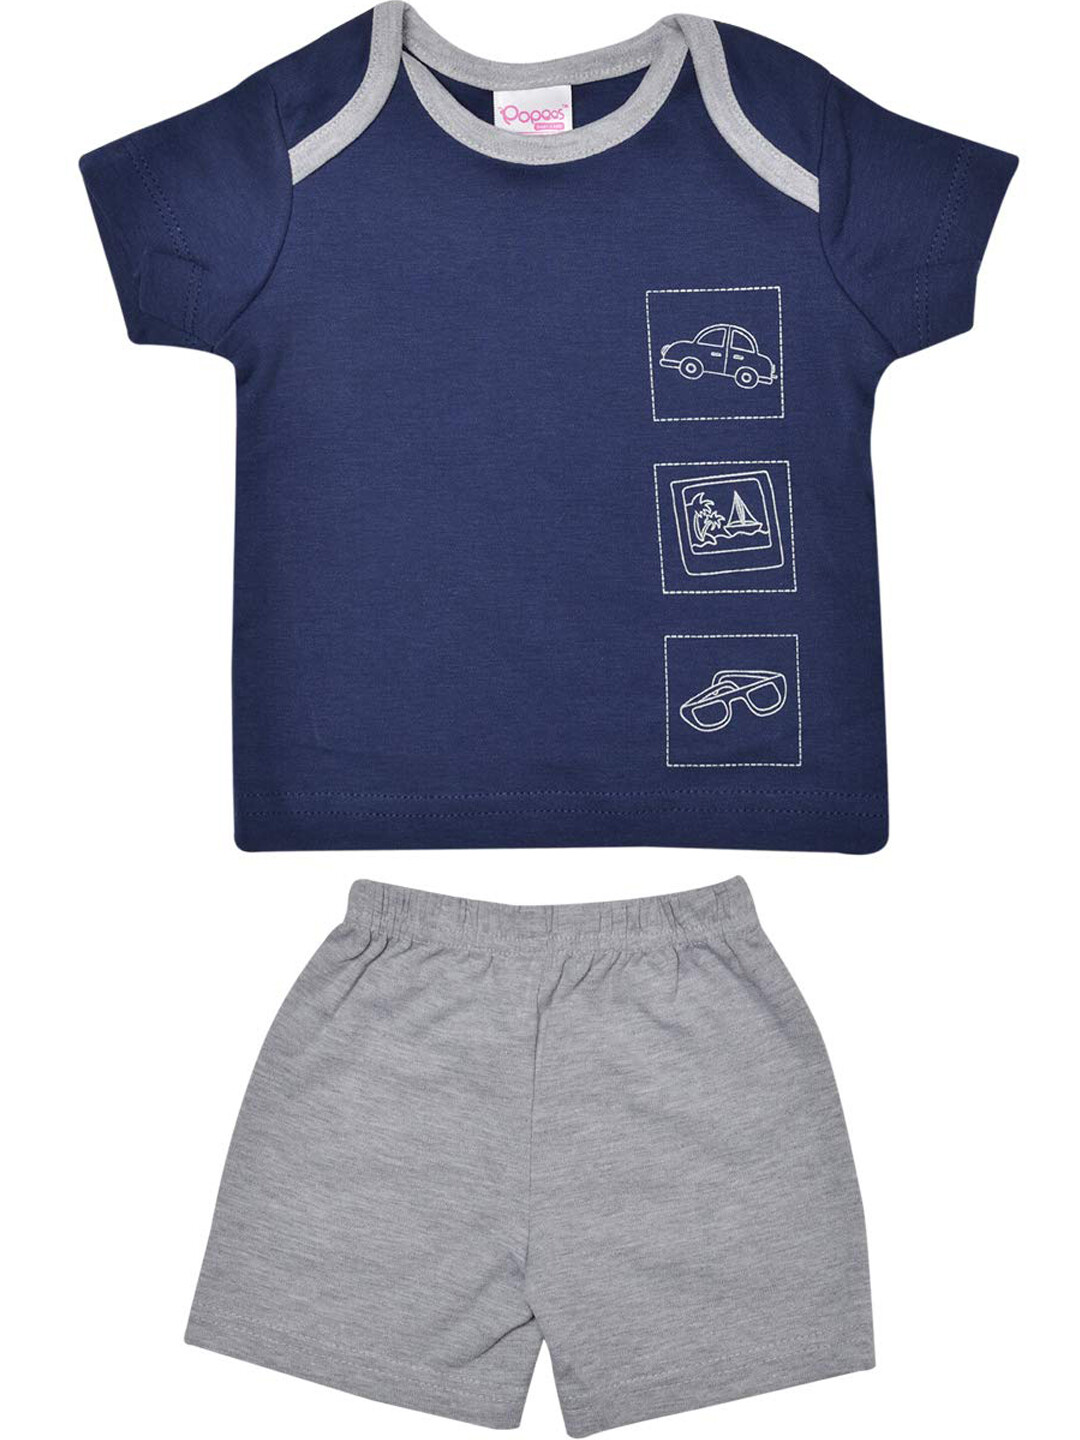 Charun Ivory Half Sleeves Navy Blue Top with Shorts